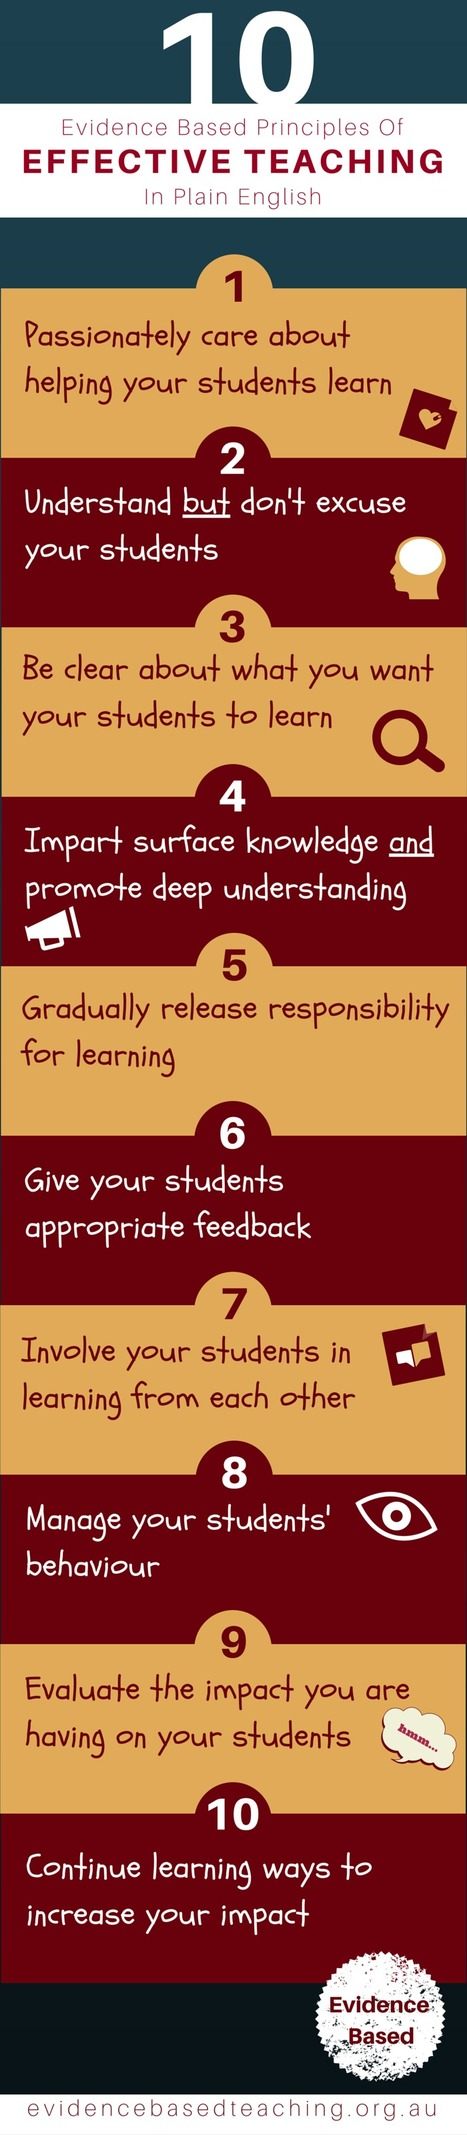 Principles of Effective Teaching | Infographic | Professional EDUcators | eLEADERship | eSkills | EFL Teaching Journal | Scoop.it